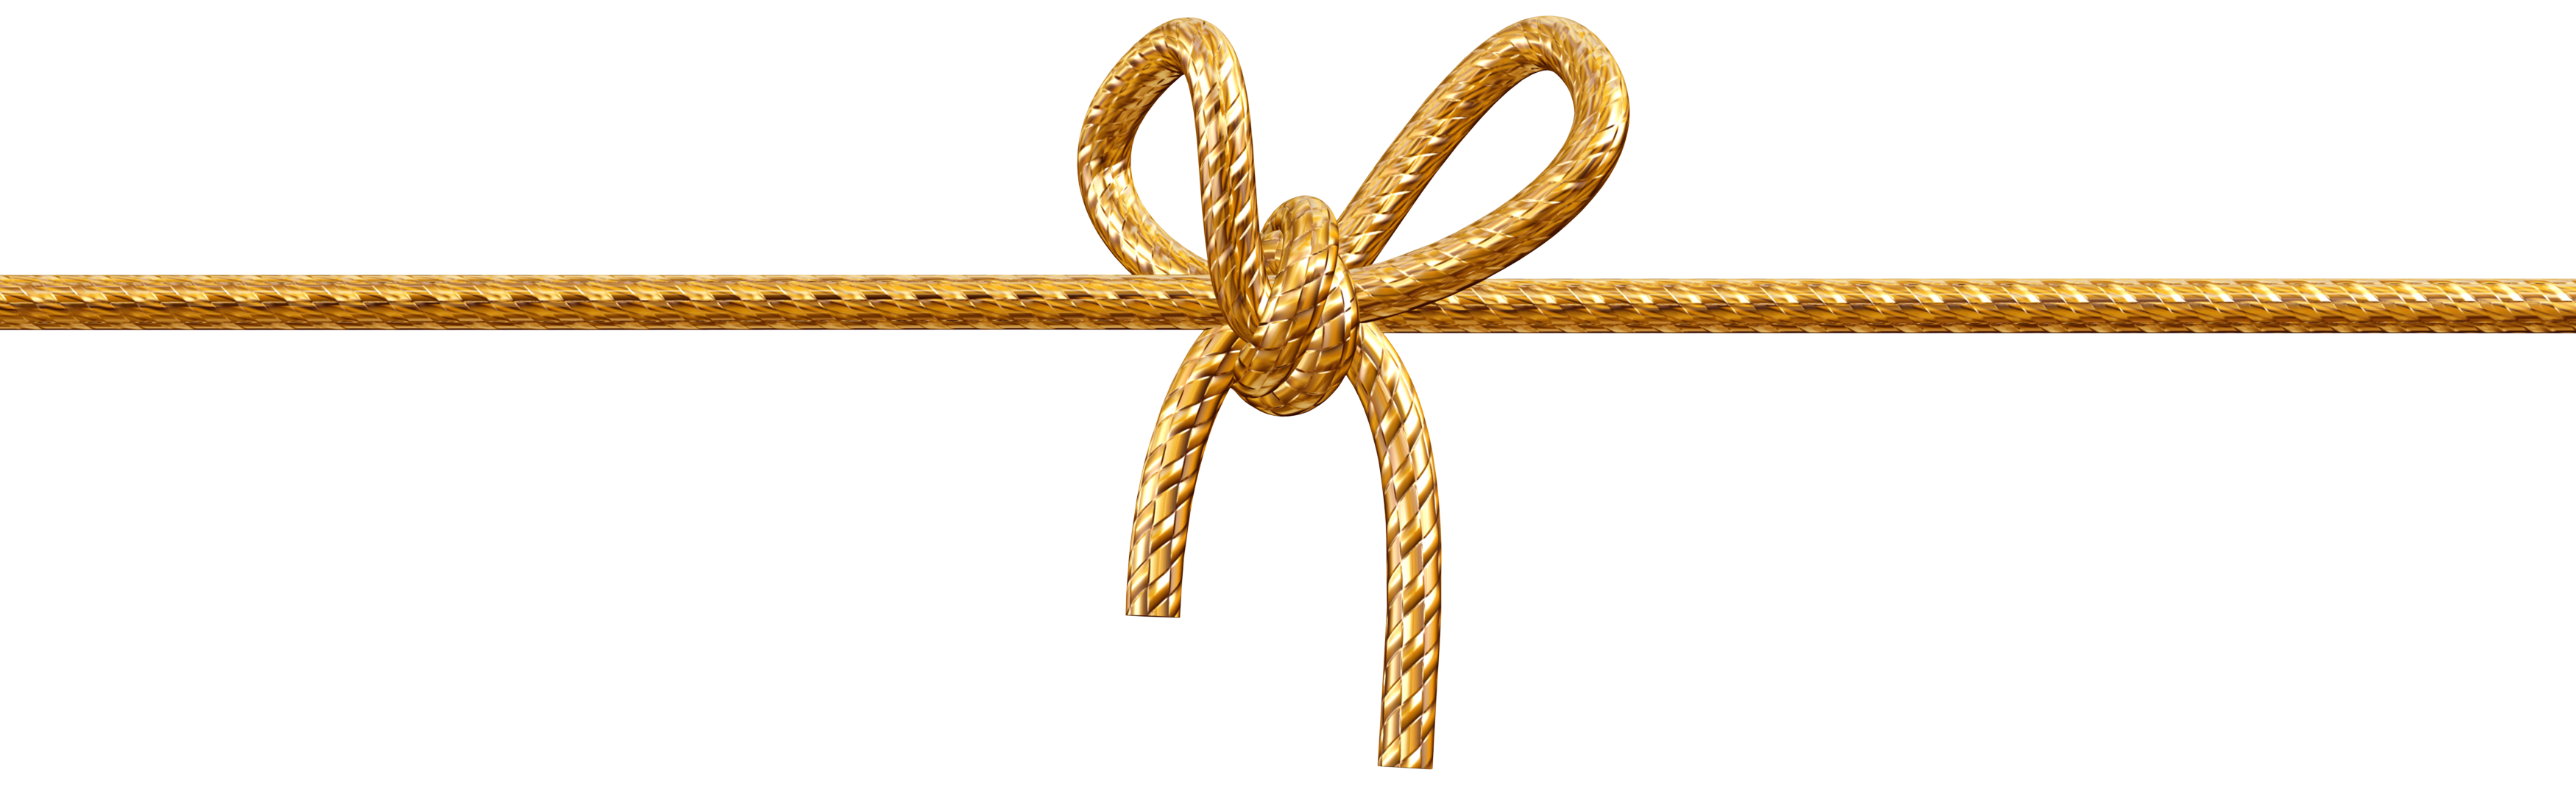 Rope Knot Png Clipart image #45164